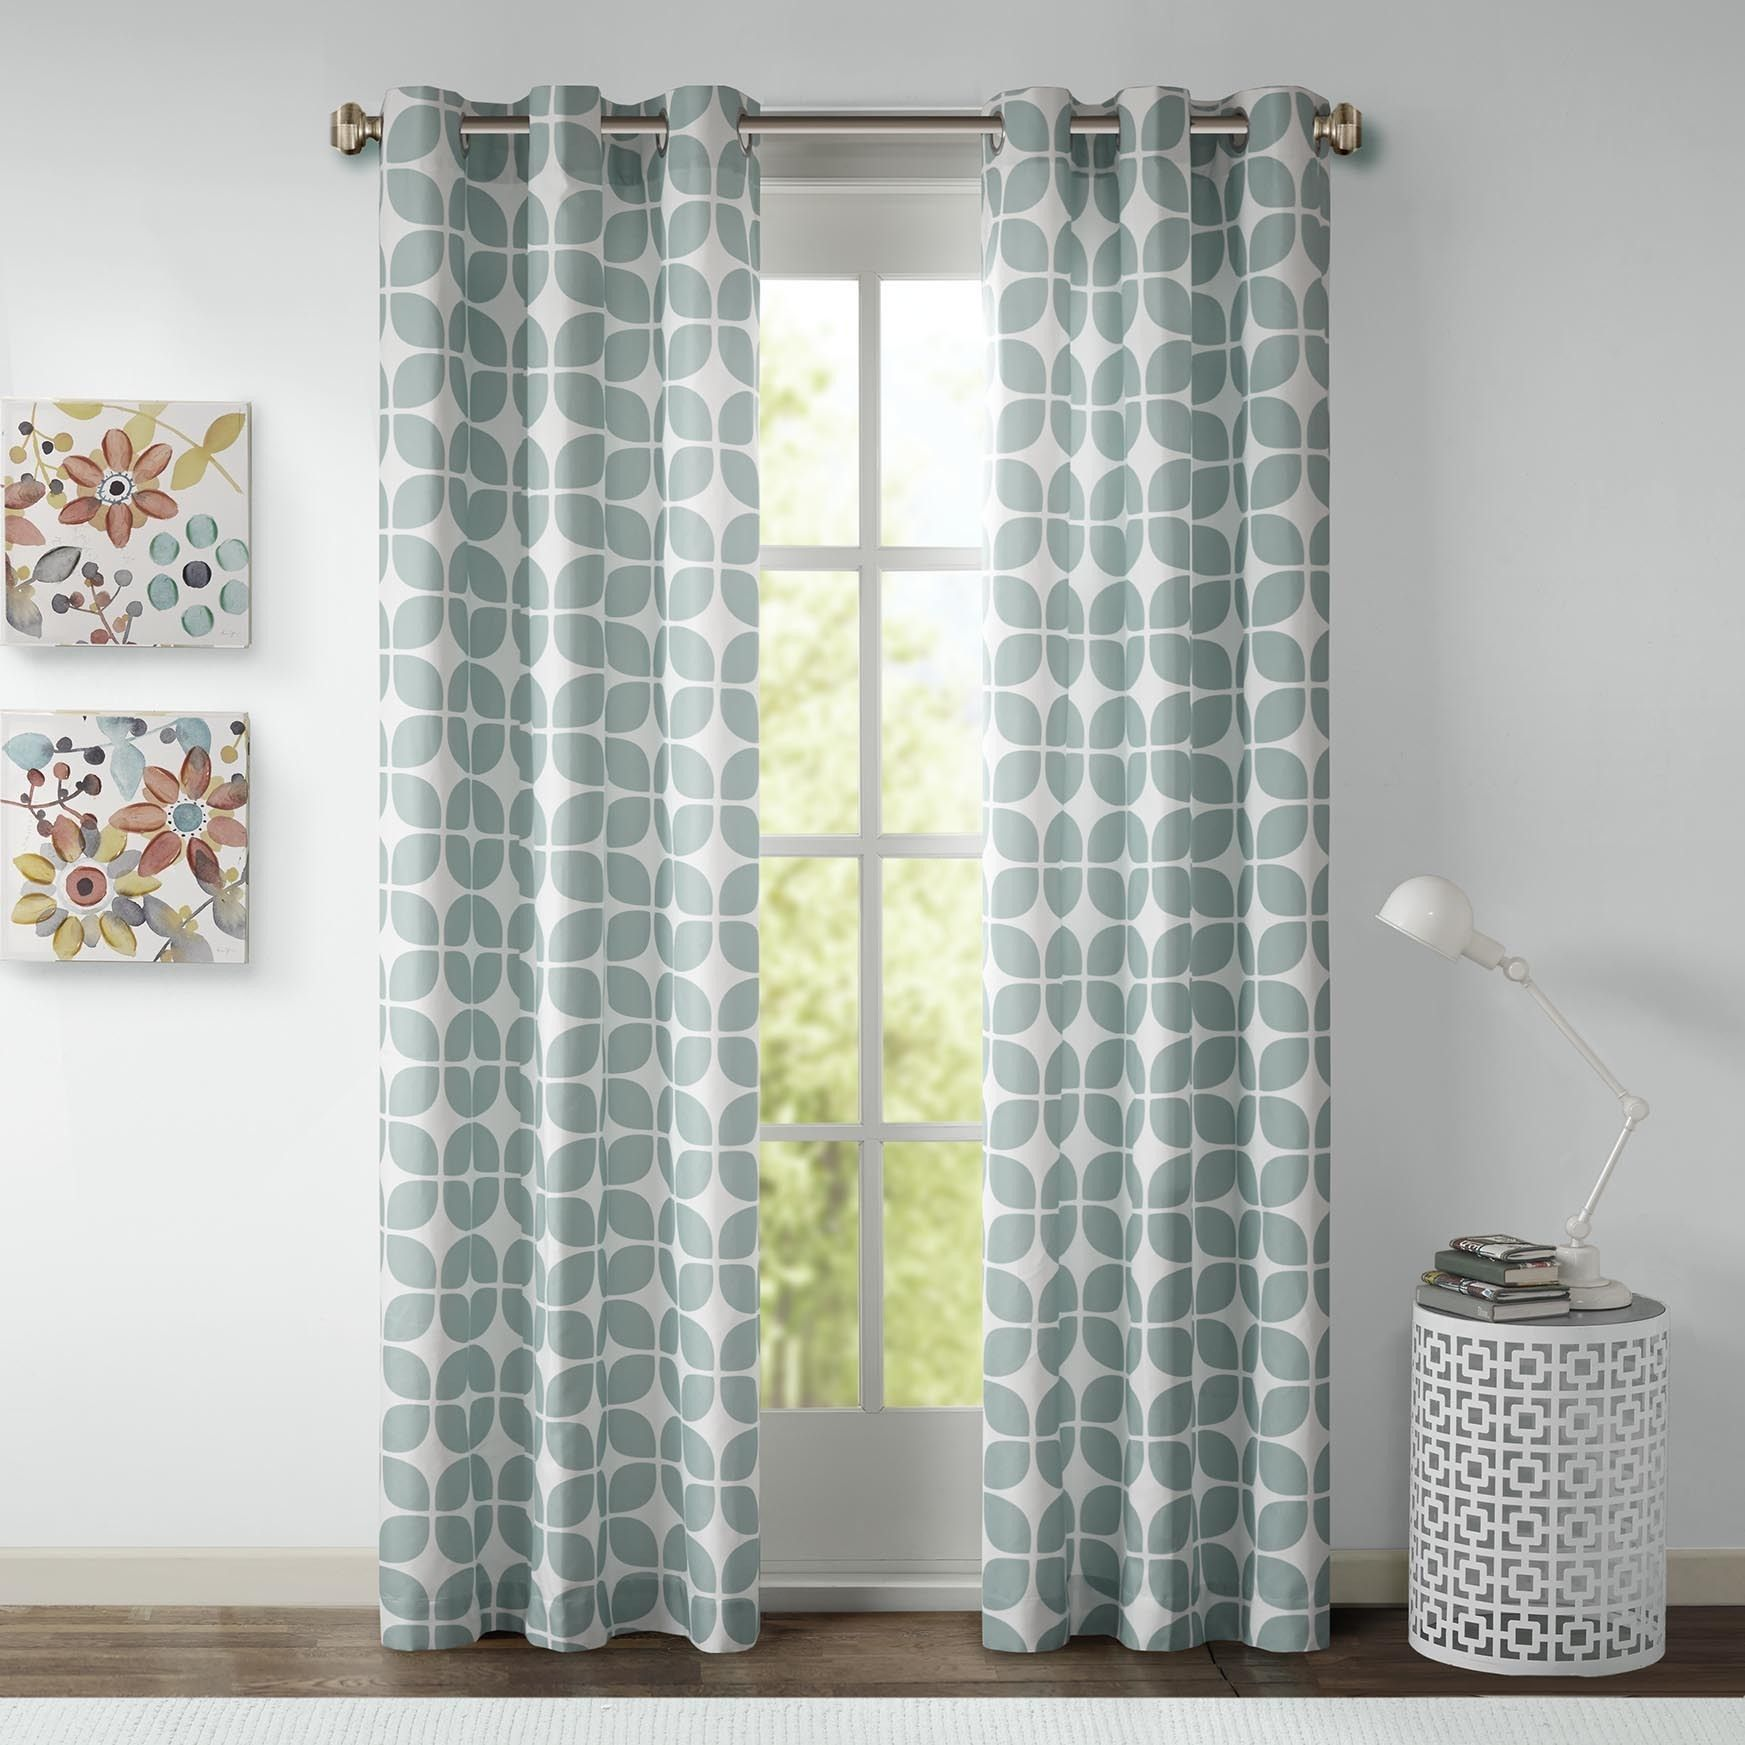 awesome shower bathroom curtains curtain uncategorizedy funny image picturesque designs of elegant fun excelent cheap ideas